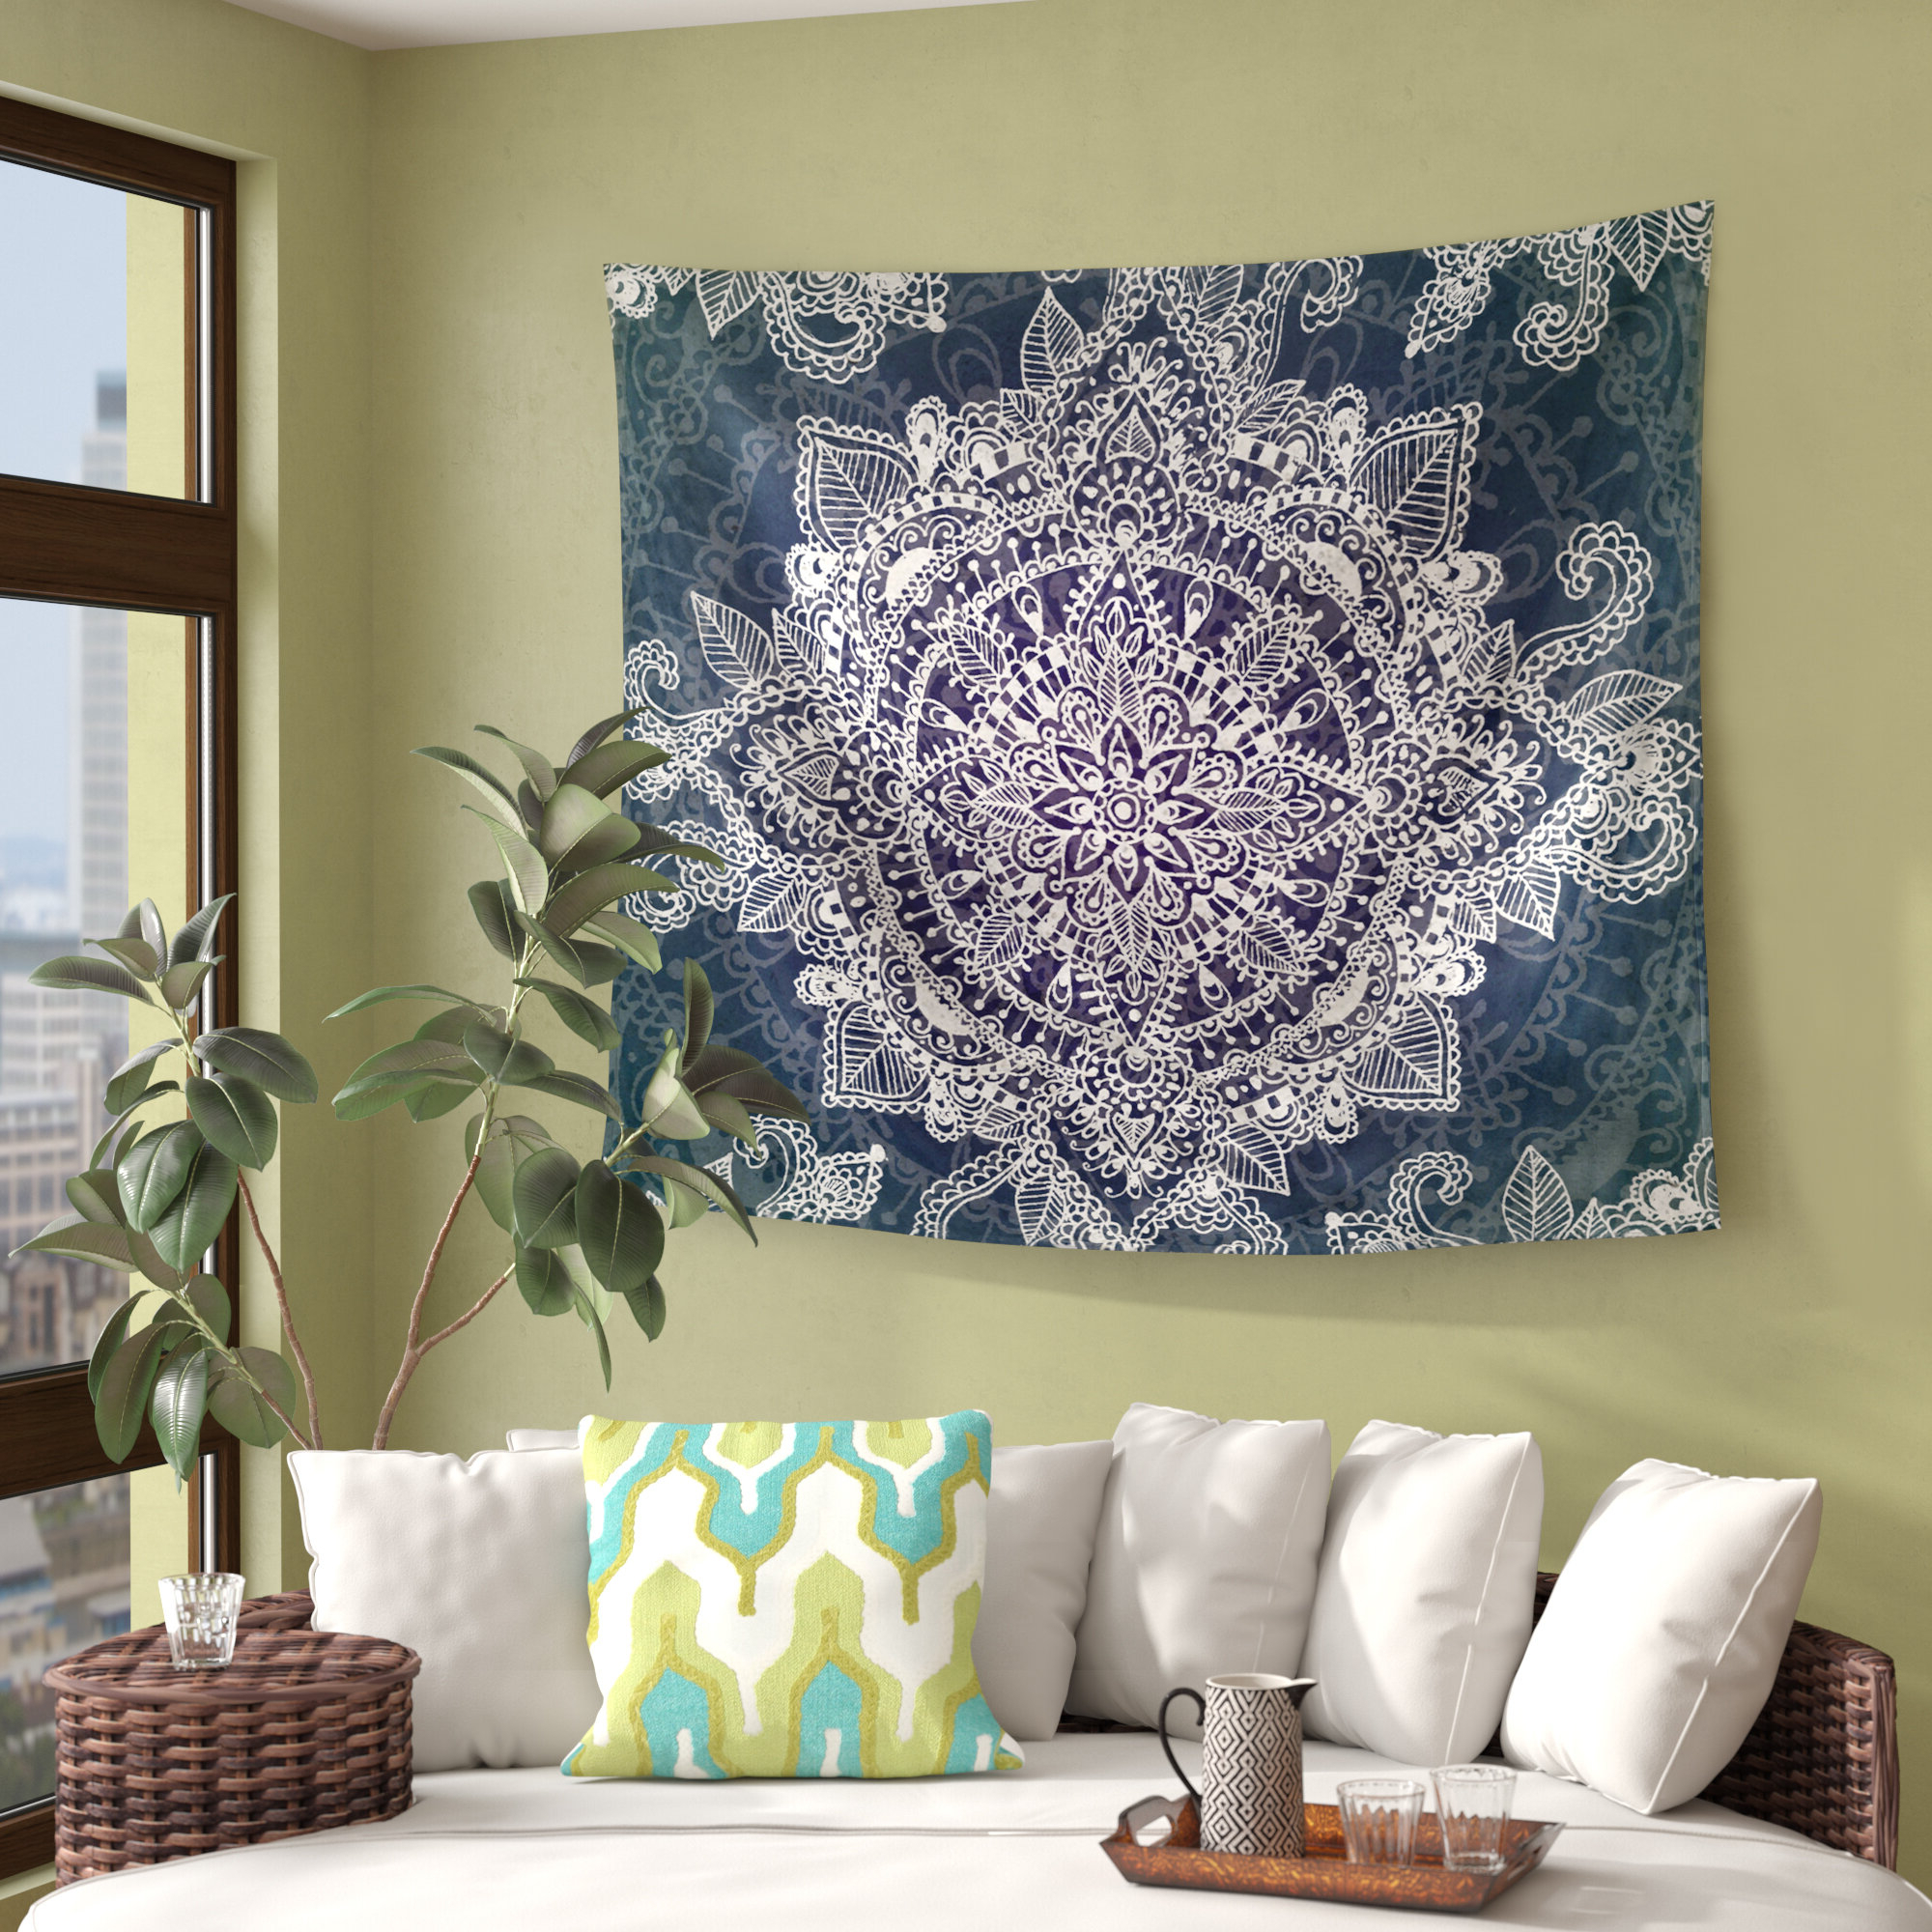 Blended Fabric Living Life Tapestries Pertaining To Favorite Tapestries You'll Love In 2021 » Wayfair (View 18 of 20)